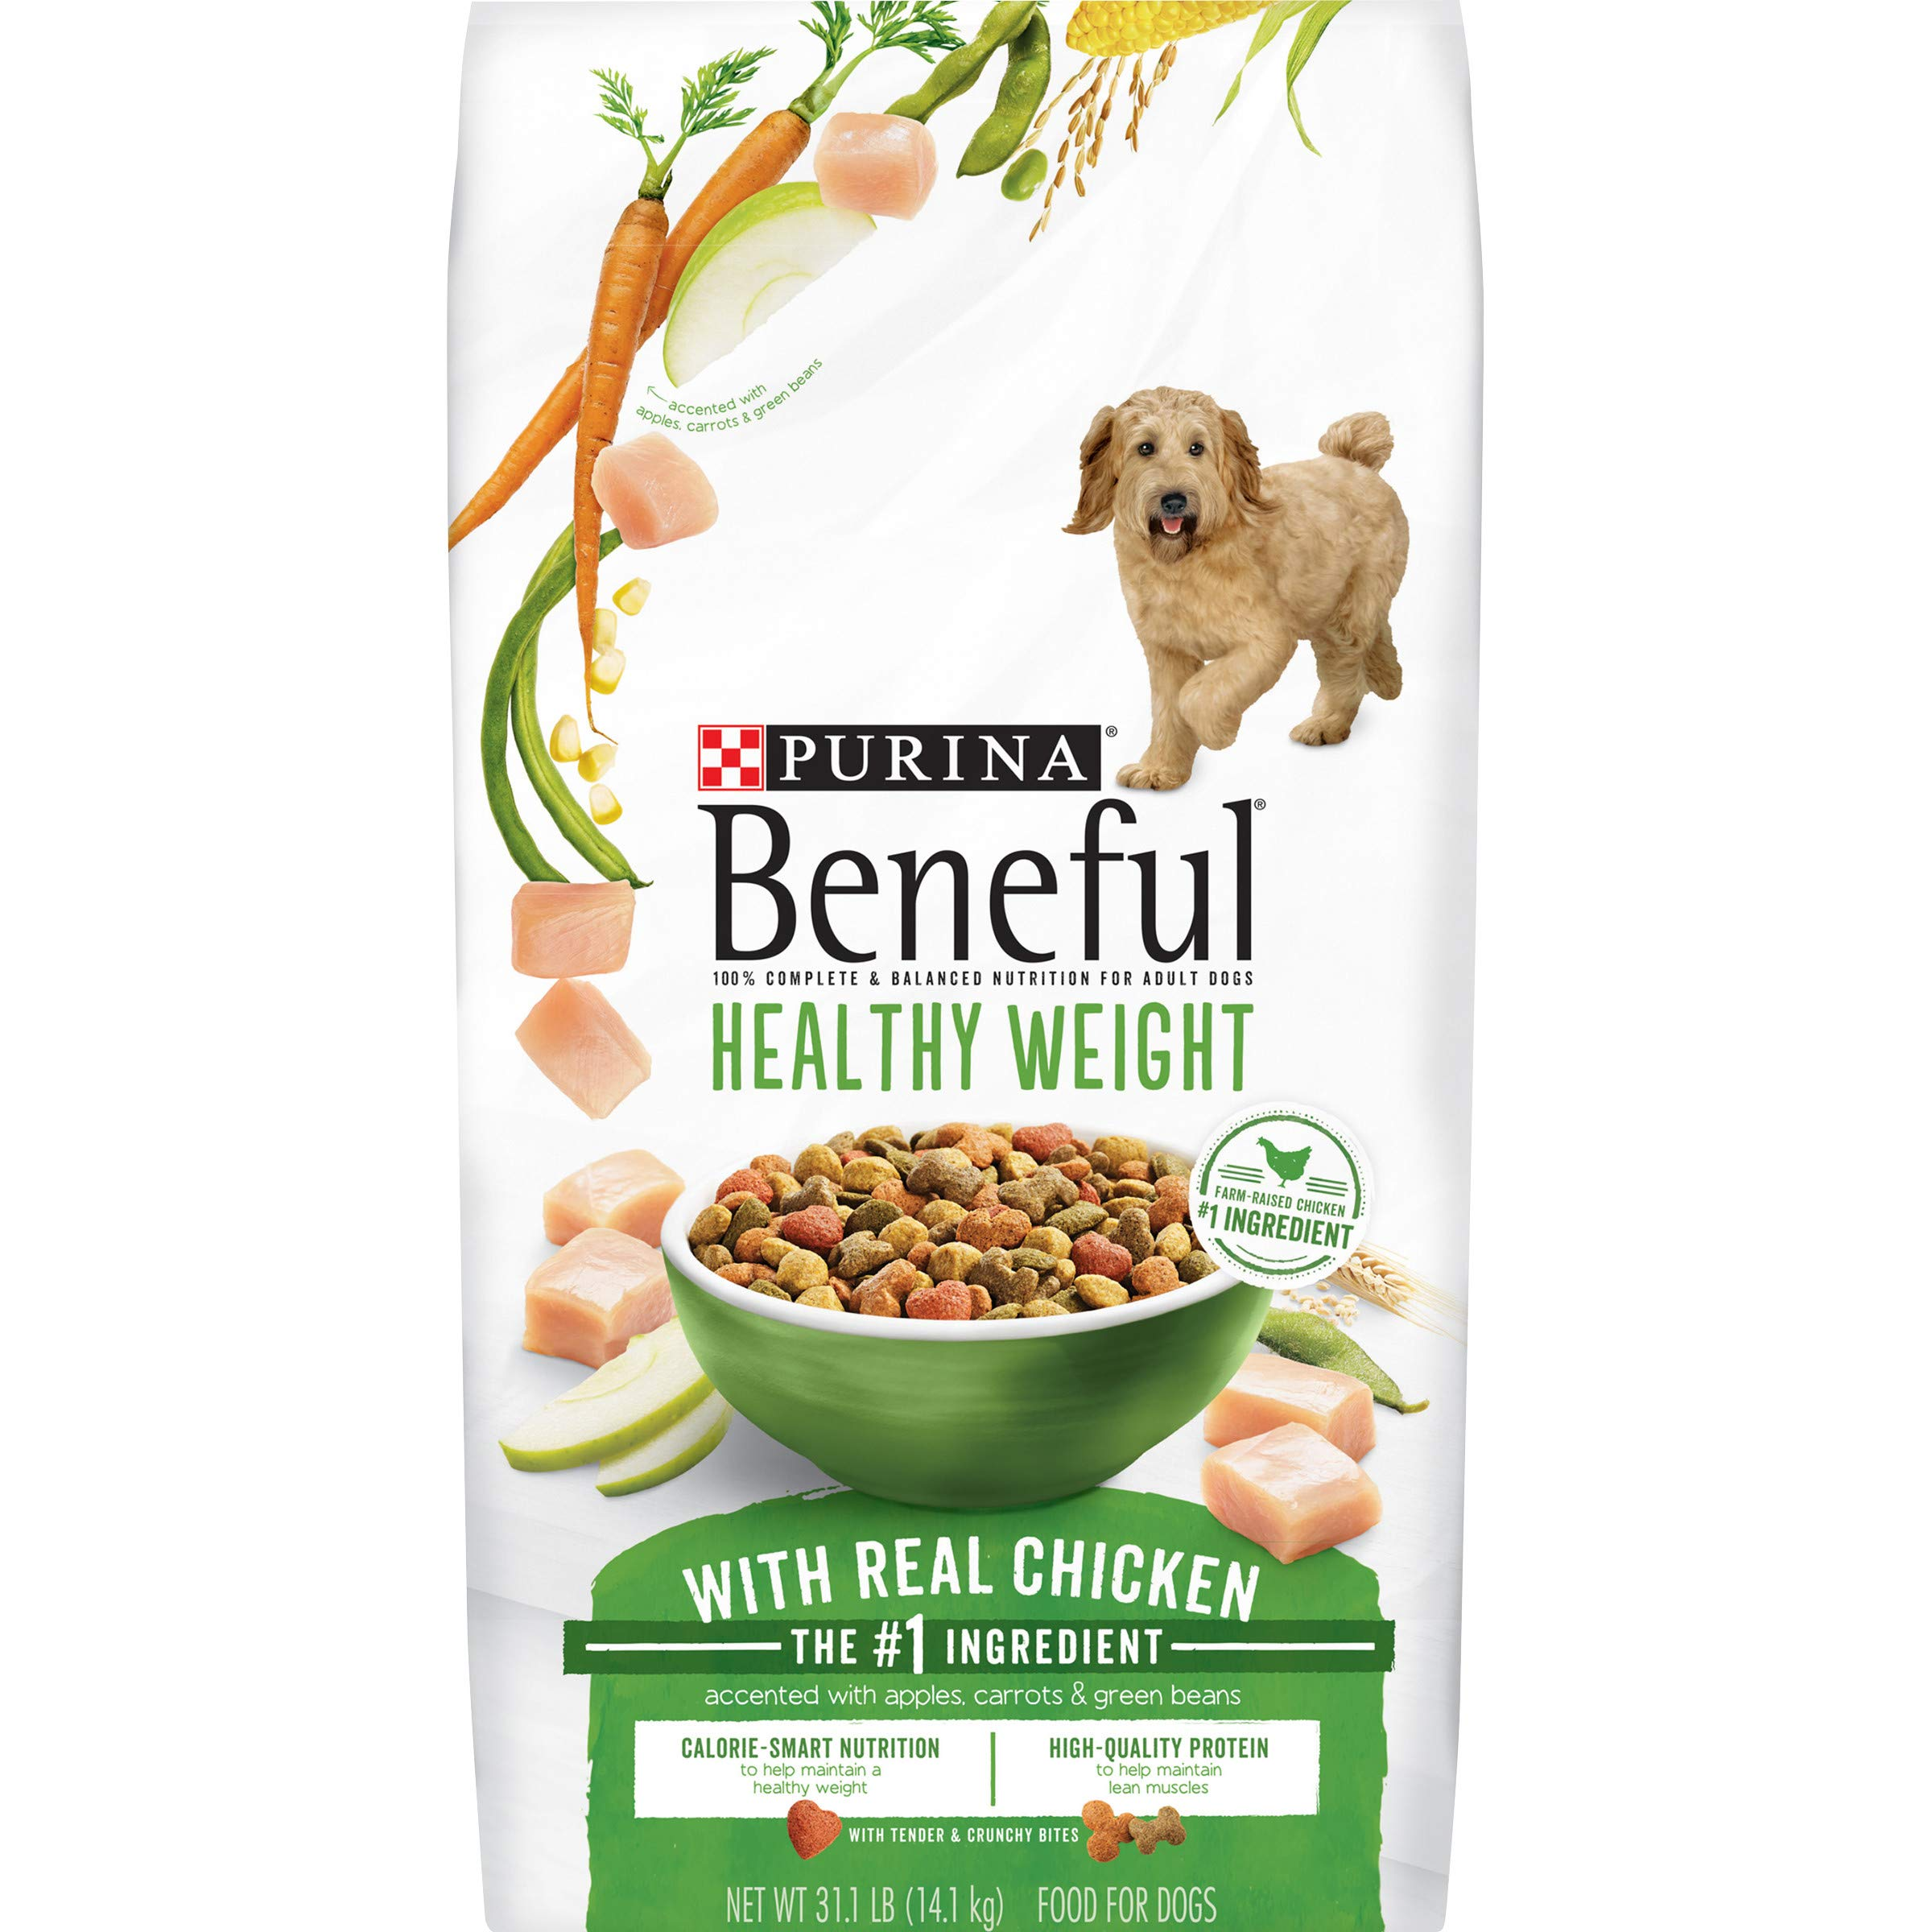 Purina Beneful Healthy Weight Dry Dog Food, Healthy Weight With Real Chicken - 31.1 lb. Bag by Purina Beneful